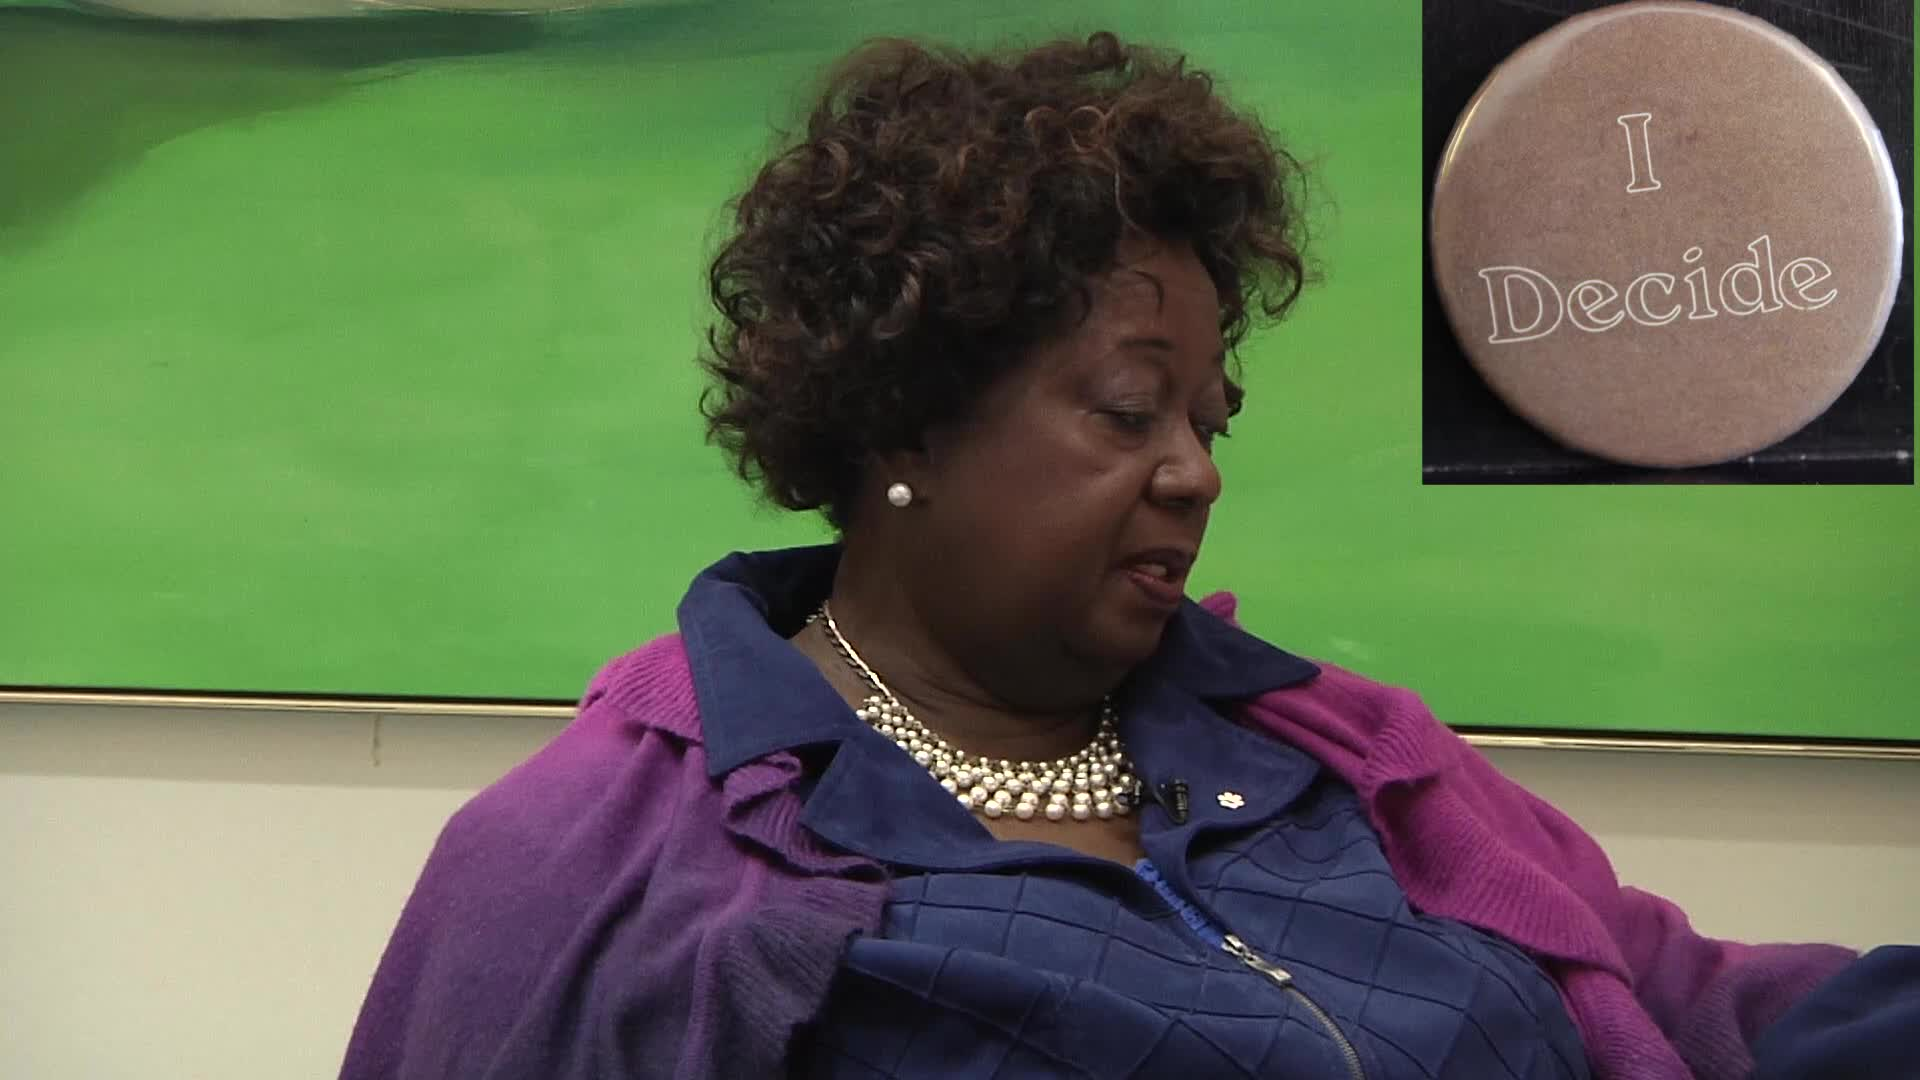 Jean Augustine interview: I decide button